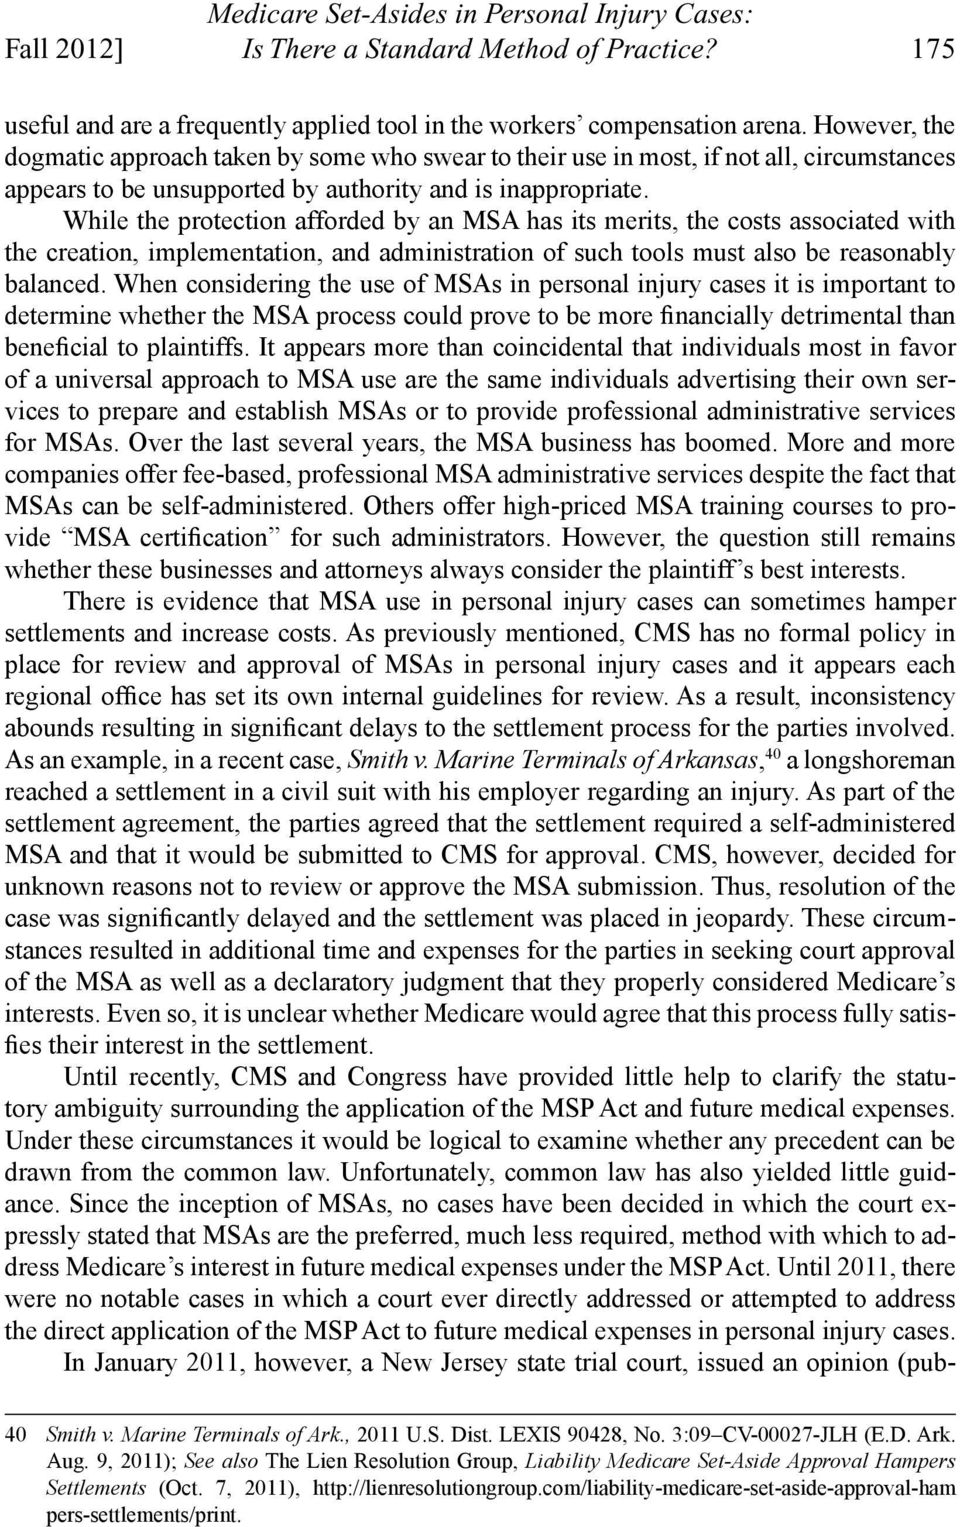 While the protection afforded by an MSA has its merits, the costs associated with the creation, implementation, and administration of such tools must also be reasonably balanced.